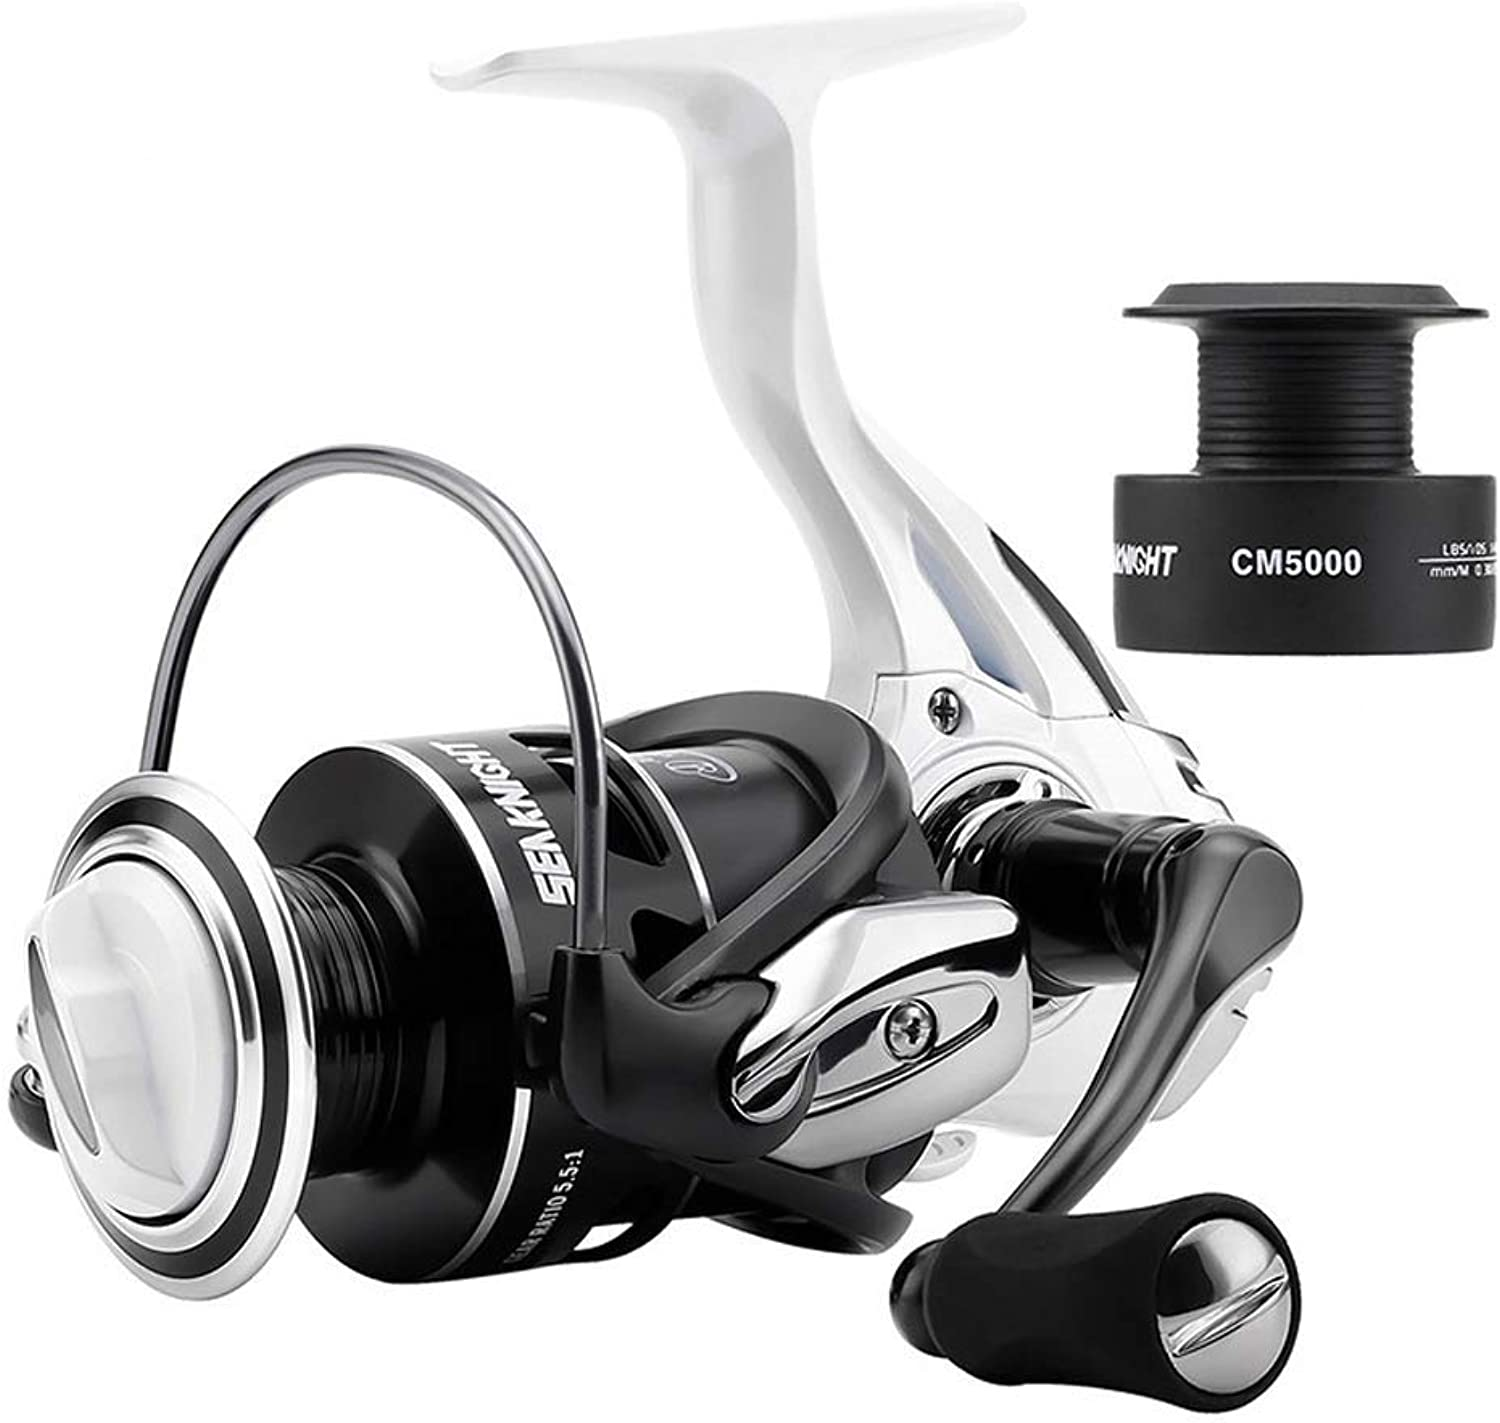 Lightweight Fishing Spinning Reel, 5.5 1 9 1 Ball Bearings Carbon Drag System Wheel, Max Drag 713kg, Carp Fishing Reel with Free Spare Spool,2000